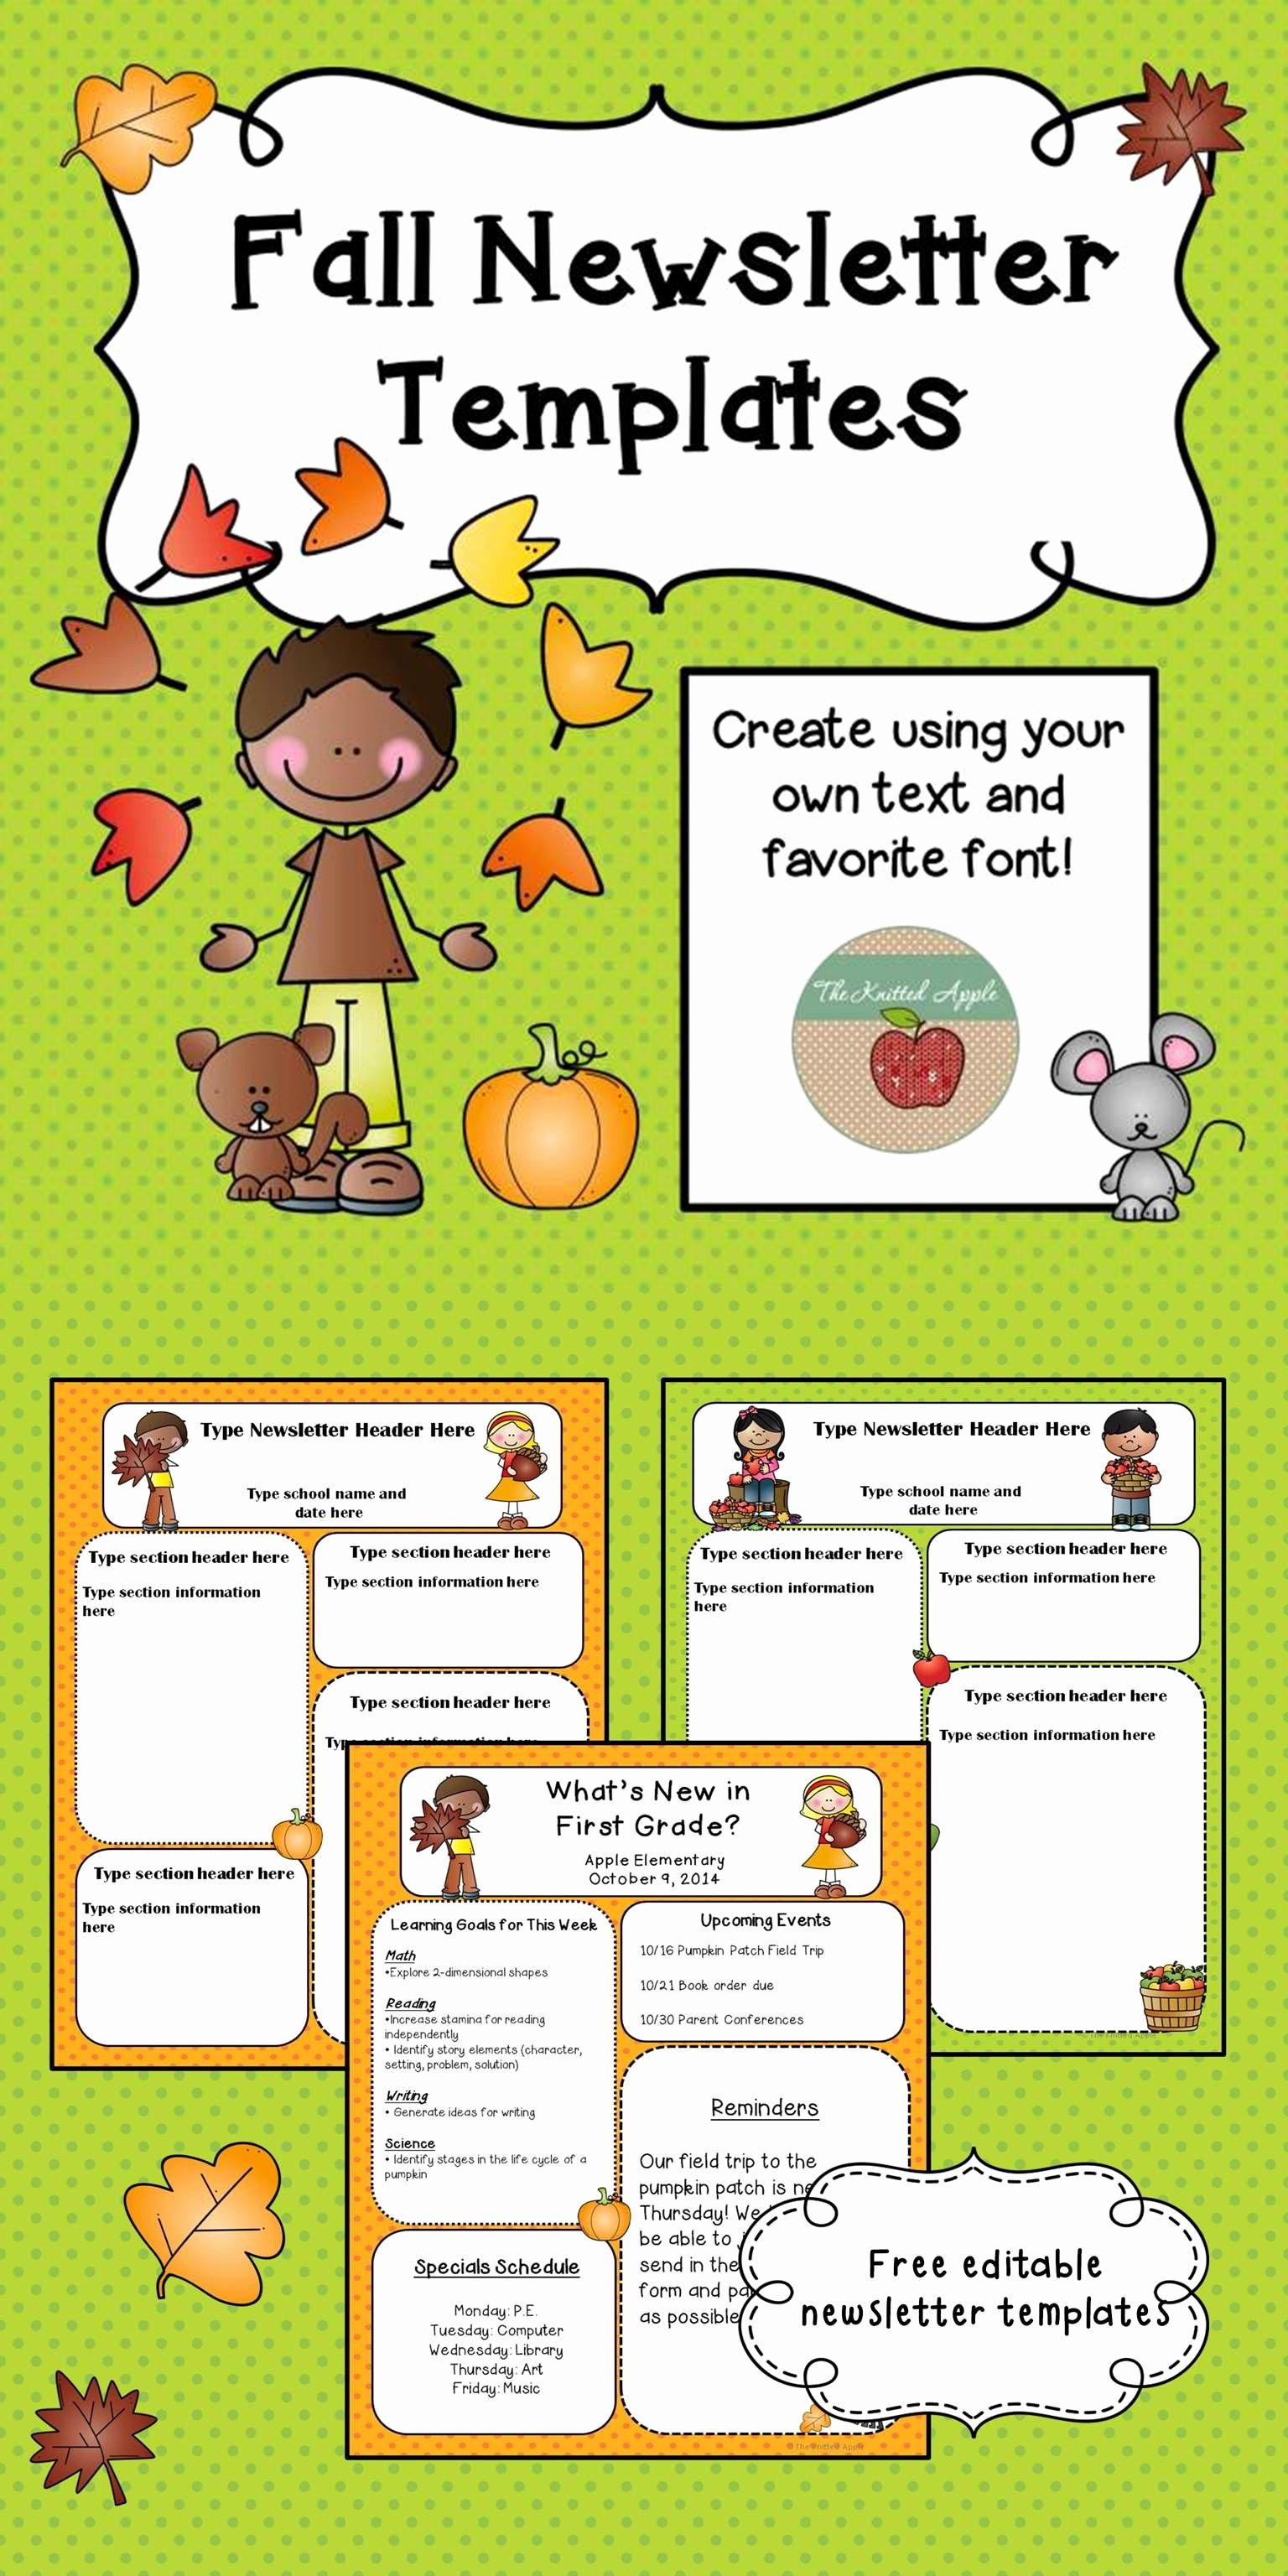 Pre K Newsletter Template Awesome Fall Newsletter Templates Freebie Pre K